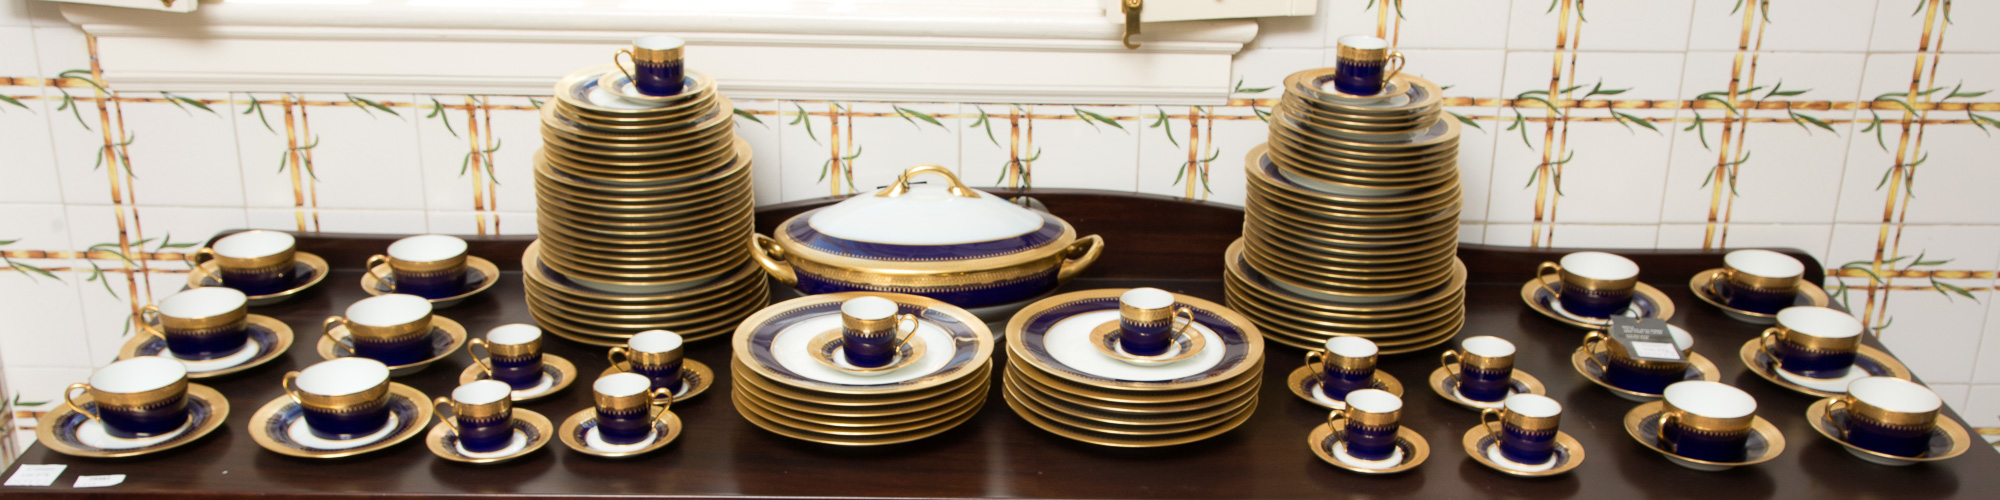 Lot image - Limoges Gilt and Cobalt Decorated Porcelain Dinner Service for Twelve